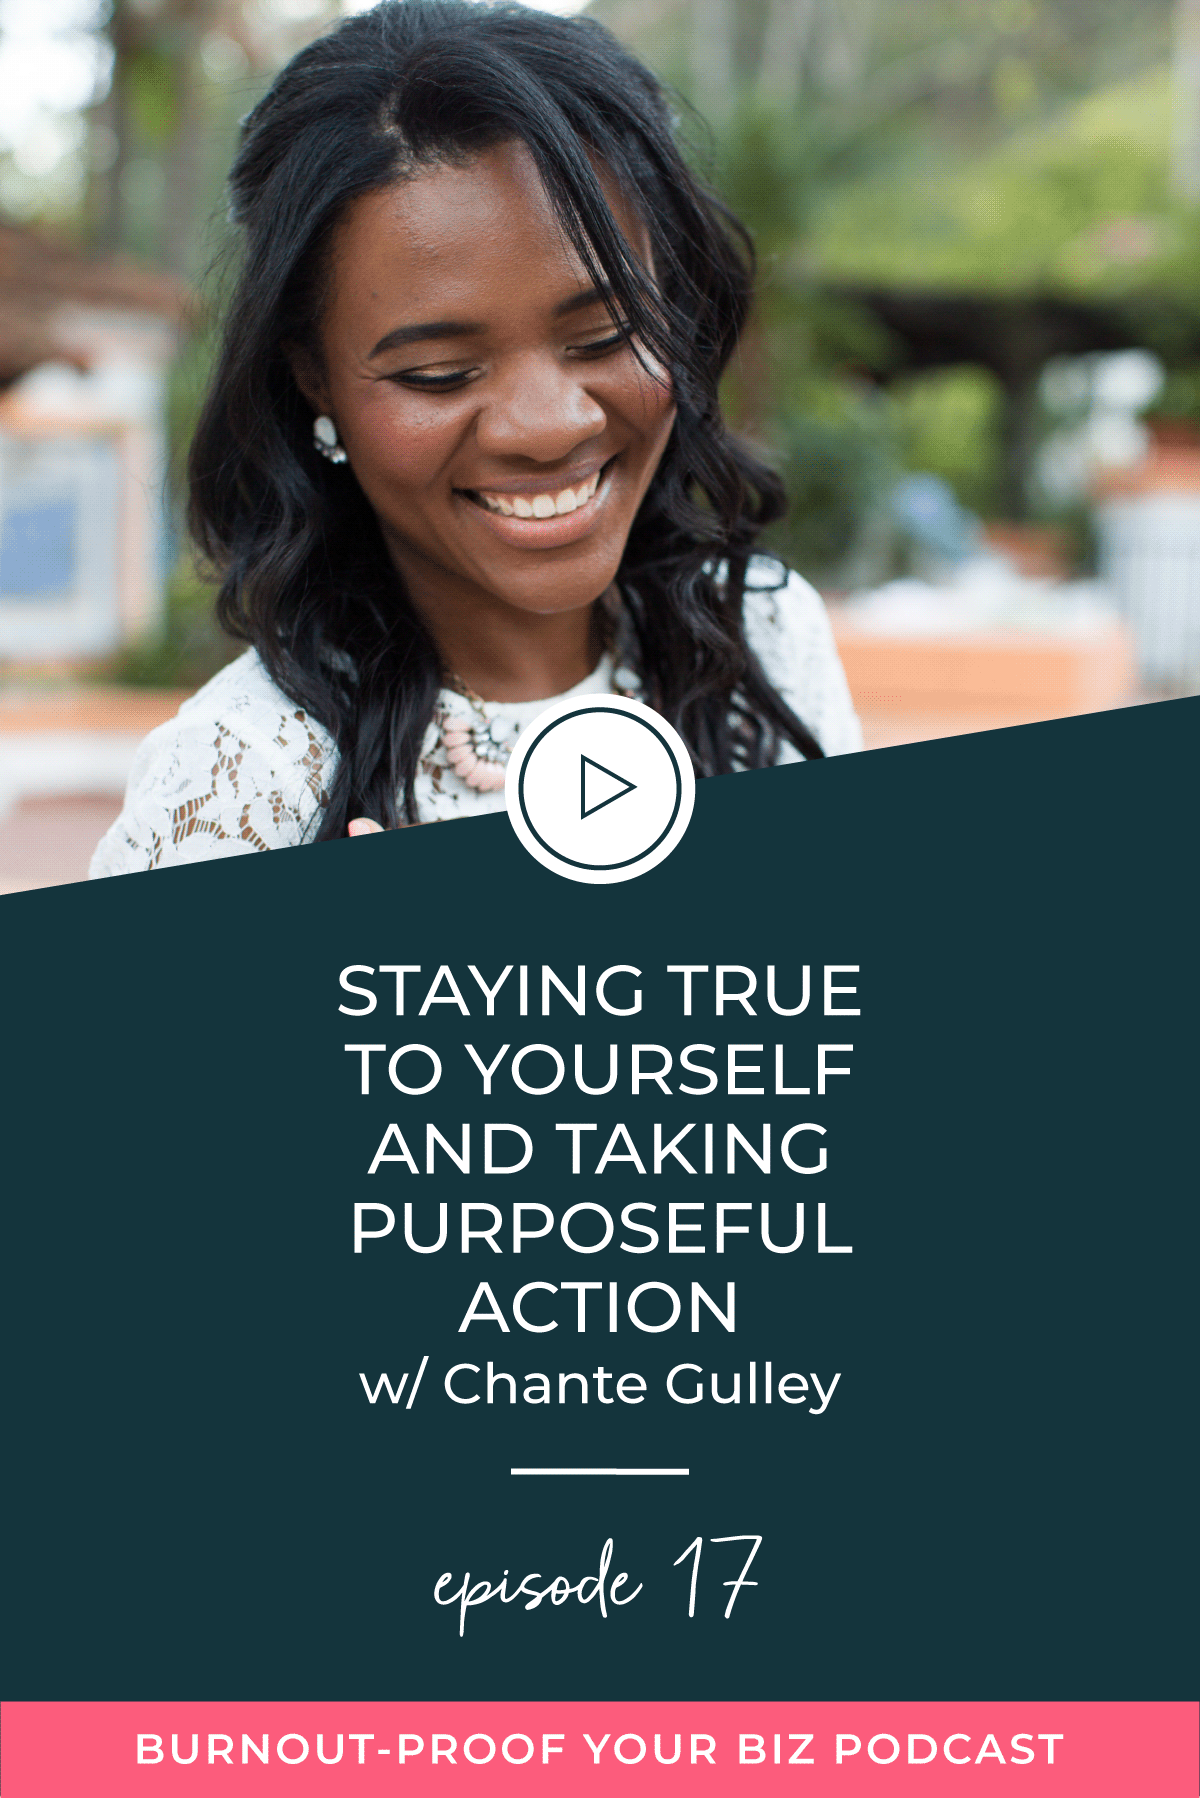 Burnout-Proof Your Biz Podcast with Chelsea B Foster   Episode 017 - Staying True to Yourself and Taking Purposeful Action with Chante Gulley   Learn how to run your biz and live your dream life on your own terms without the fear of burnout.